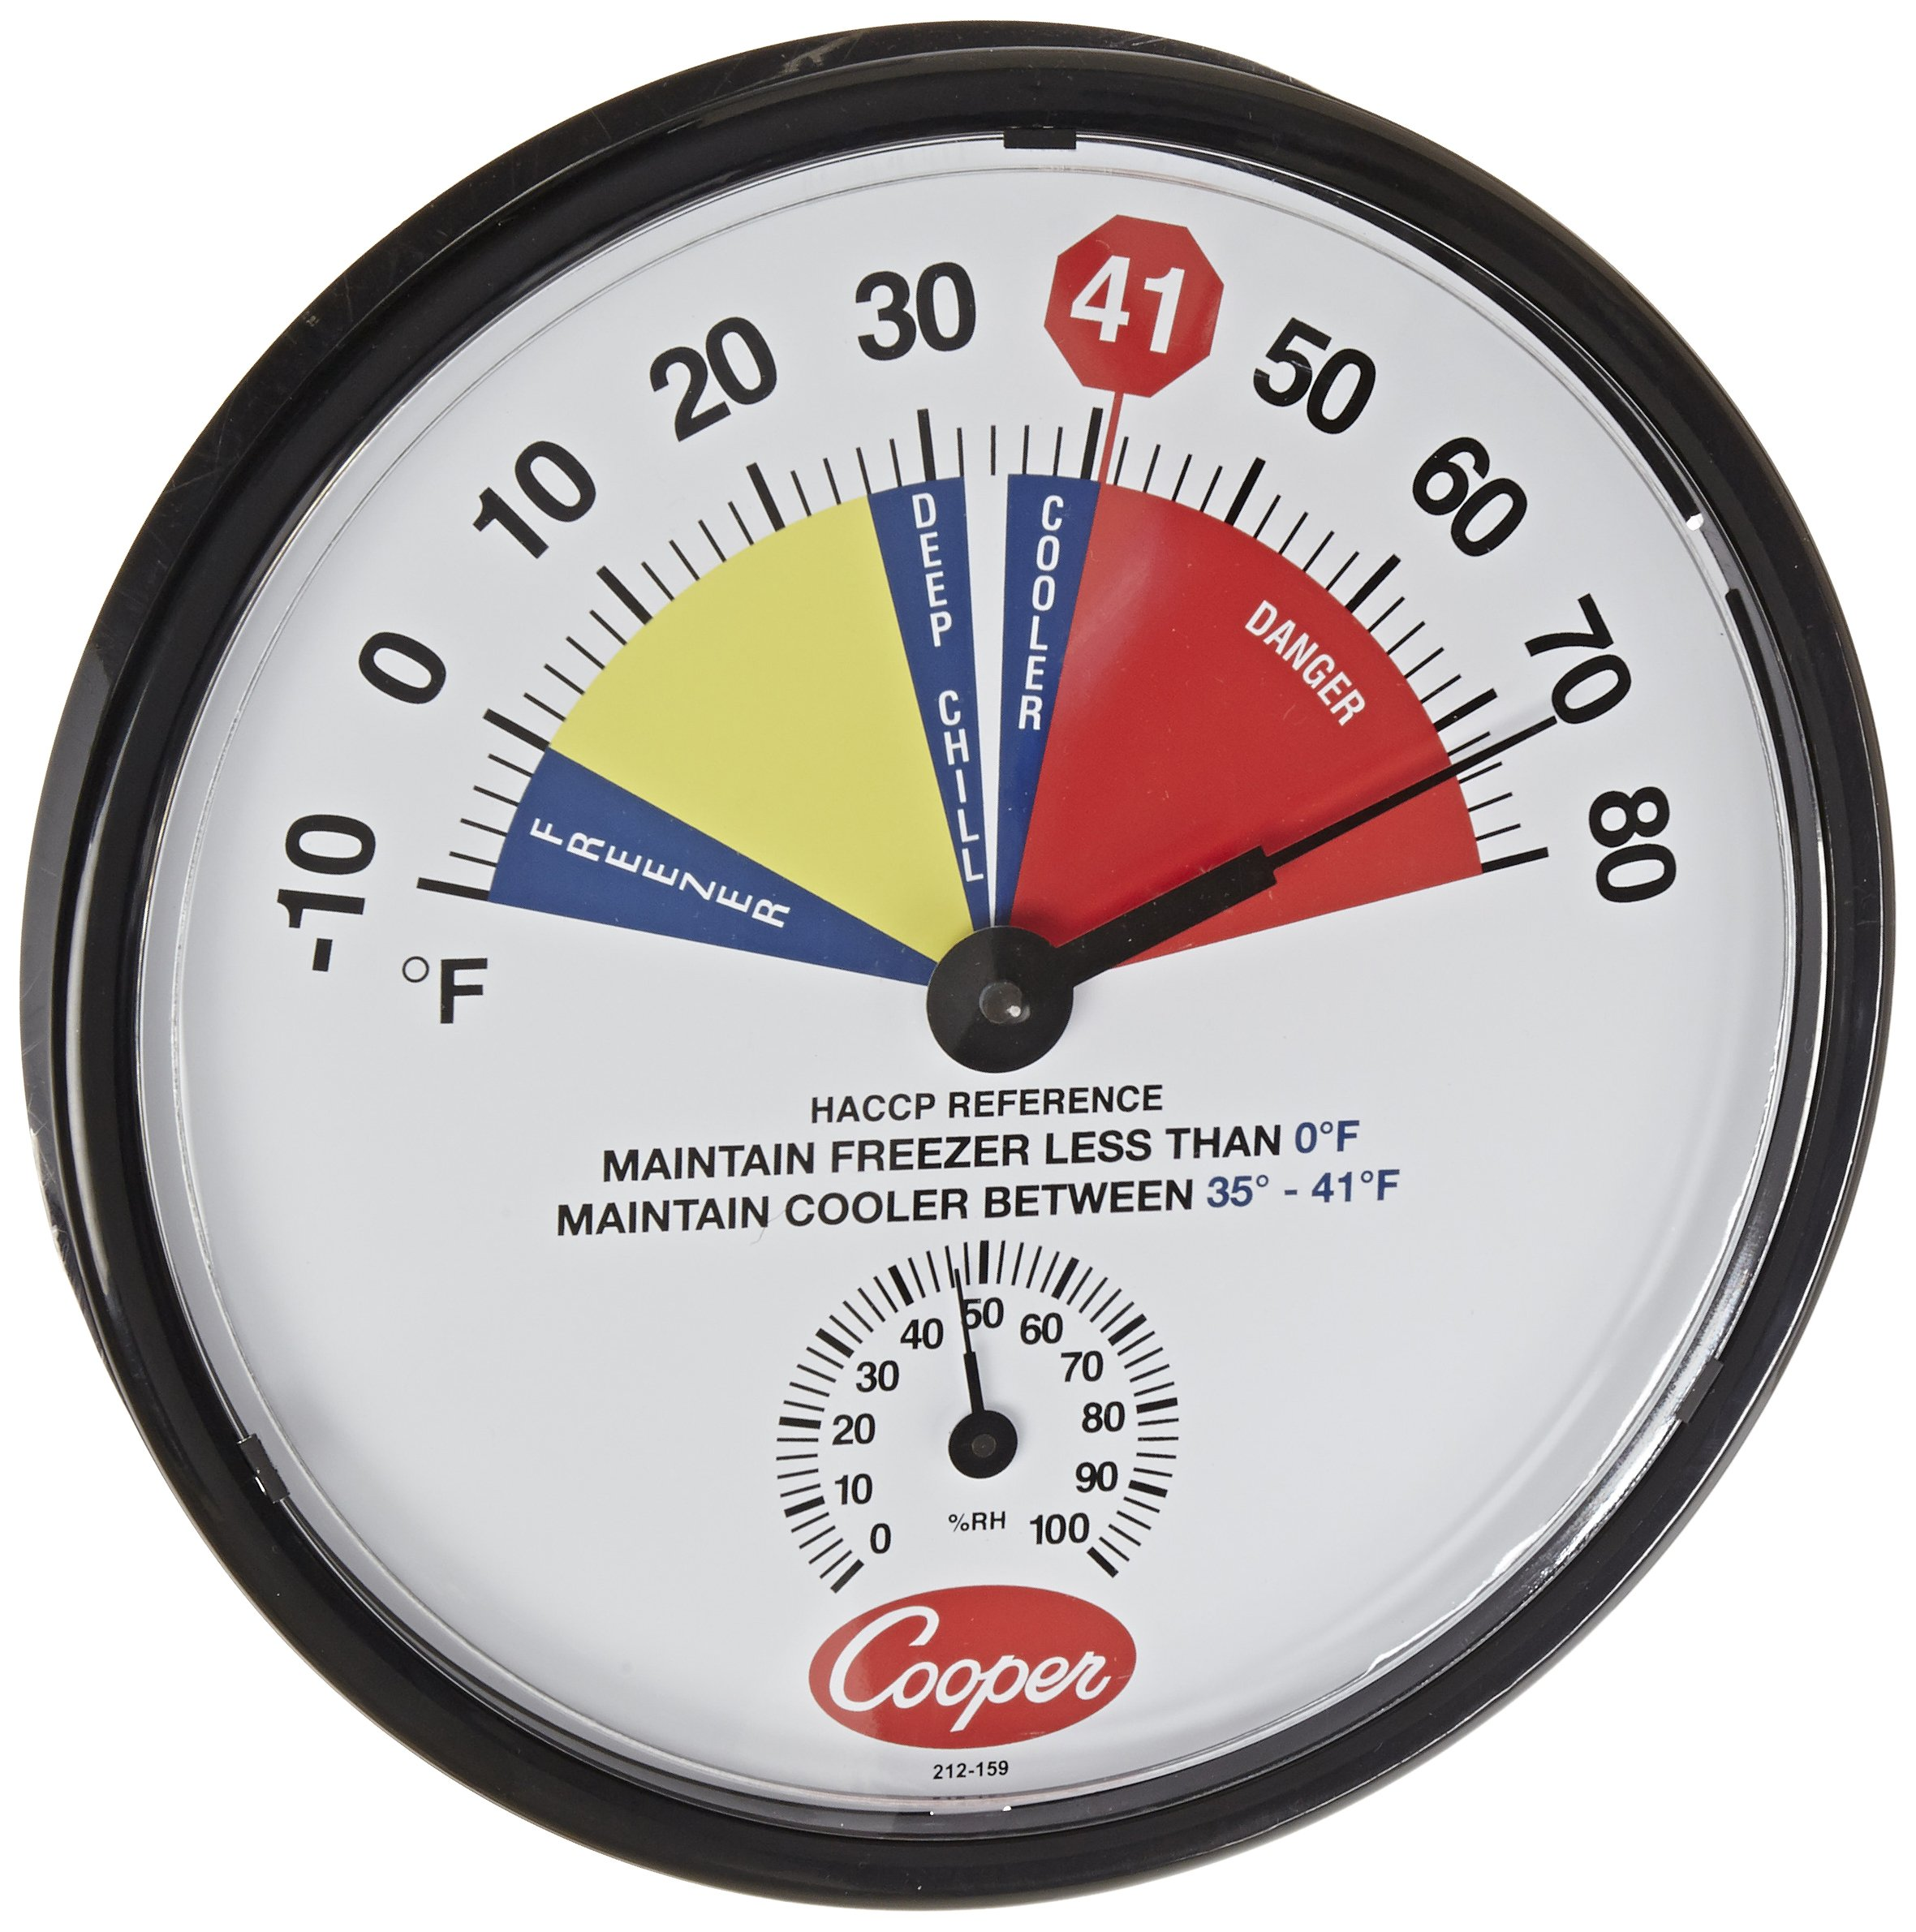 Cooper-Atkins 212-159-8 Bi-Metals HACCP Cooler/Freezer Thermometer, 10 to 80 degrees F Temperature Range by Cooper